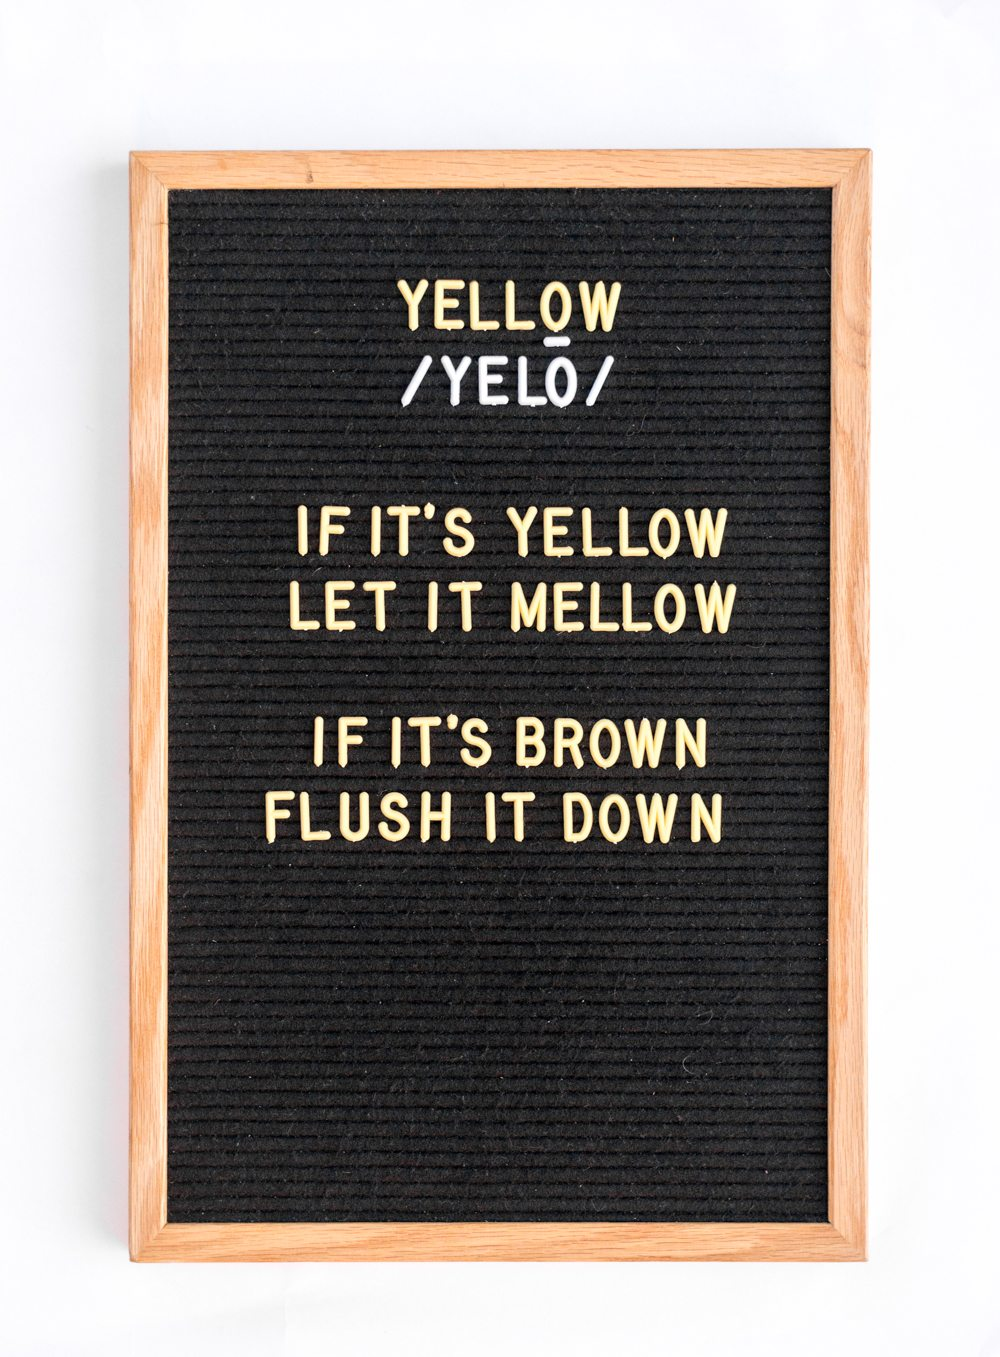 YELLOW Letter Board Letters!!!